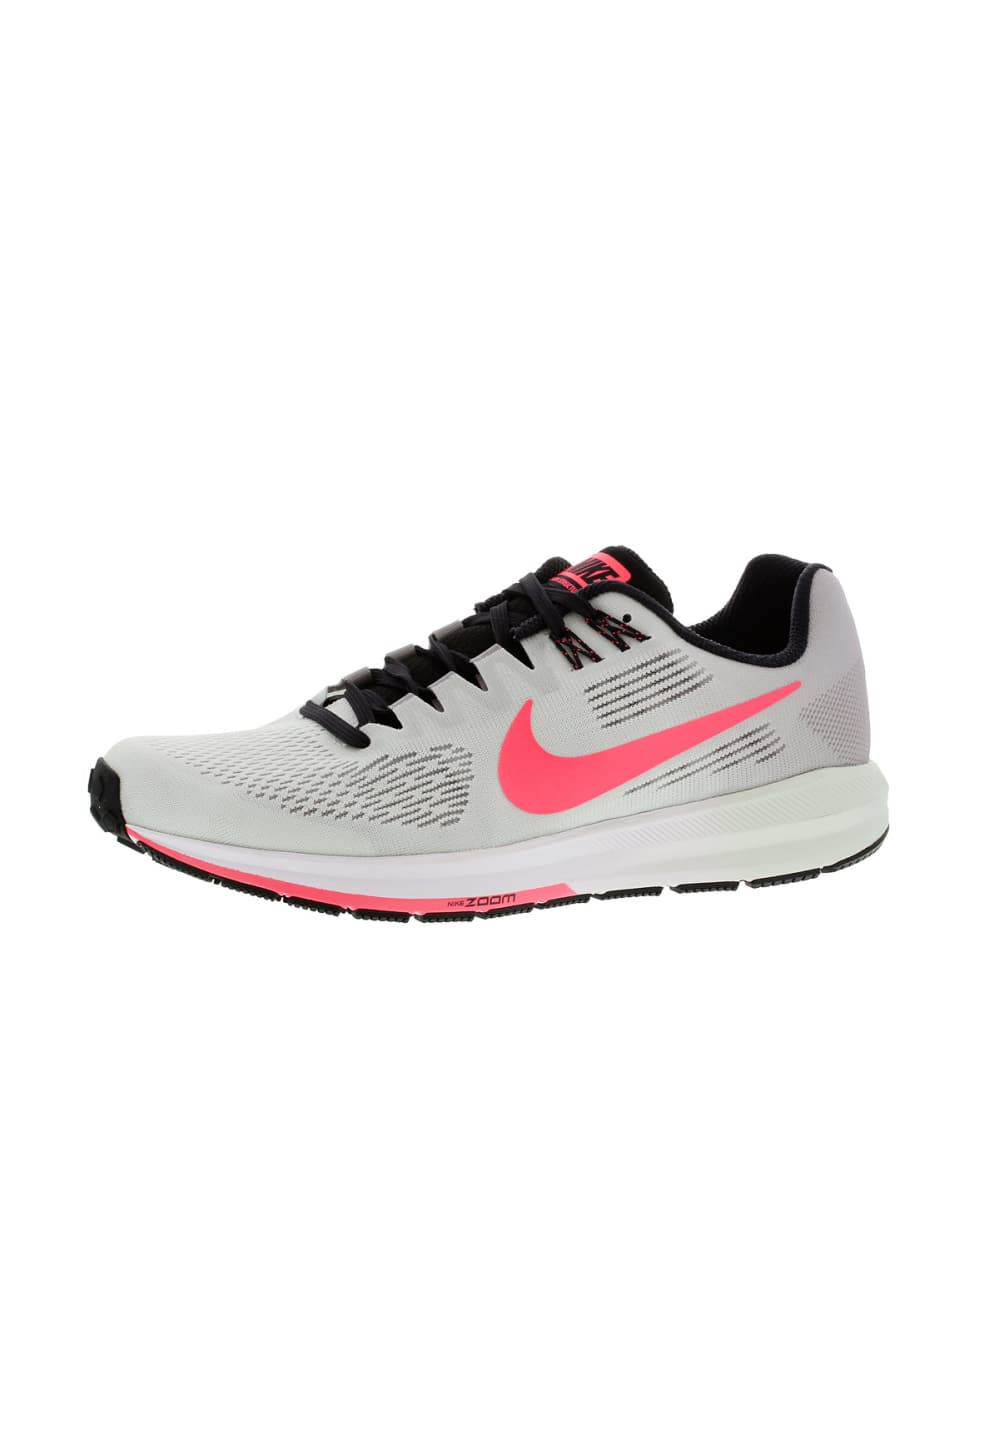 best service 571b2 ccb66 Nike Air Zoom Structure 21 - Running shoes for Women - Grey